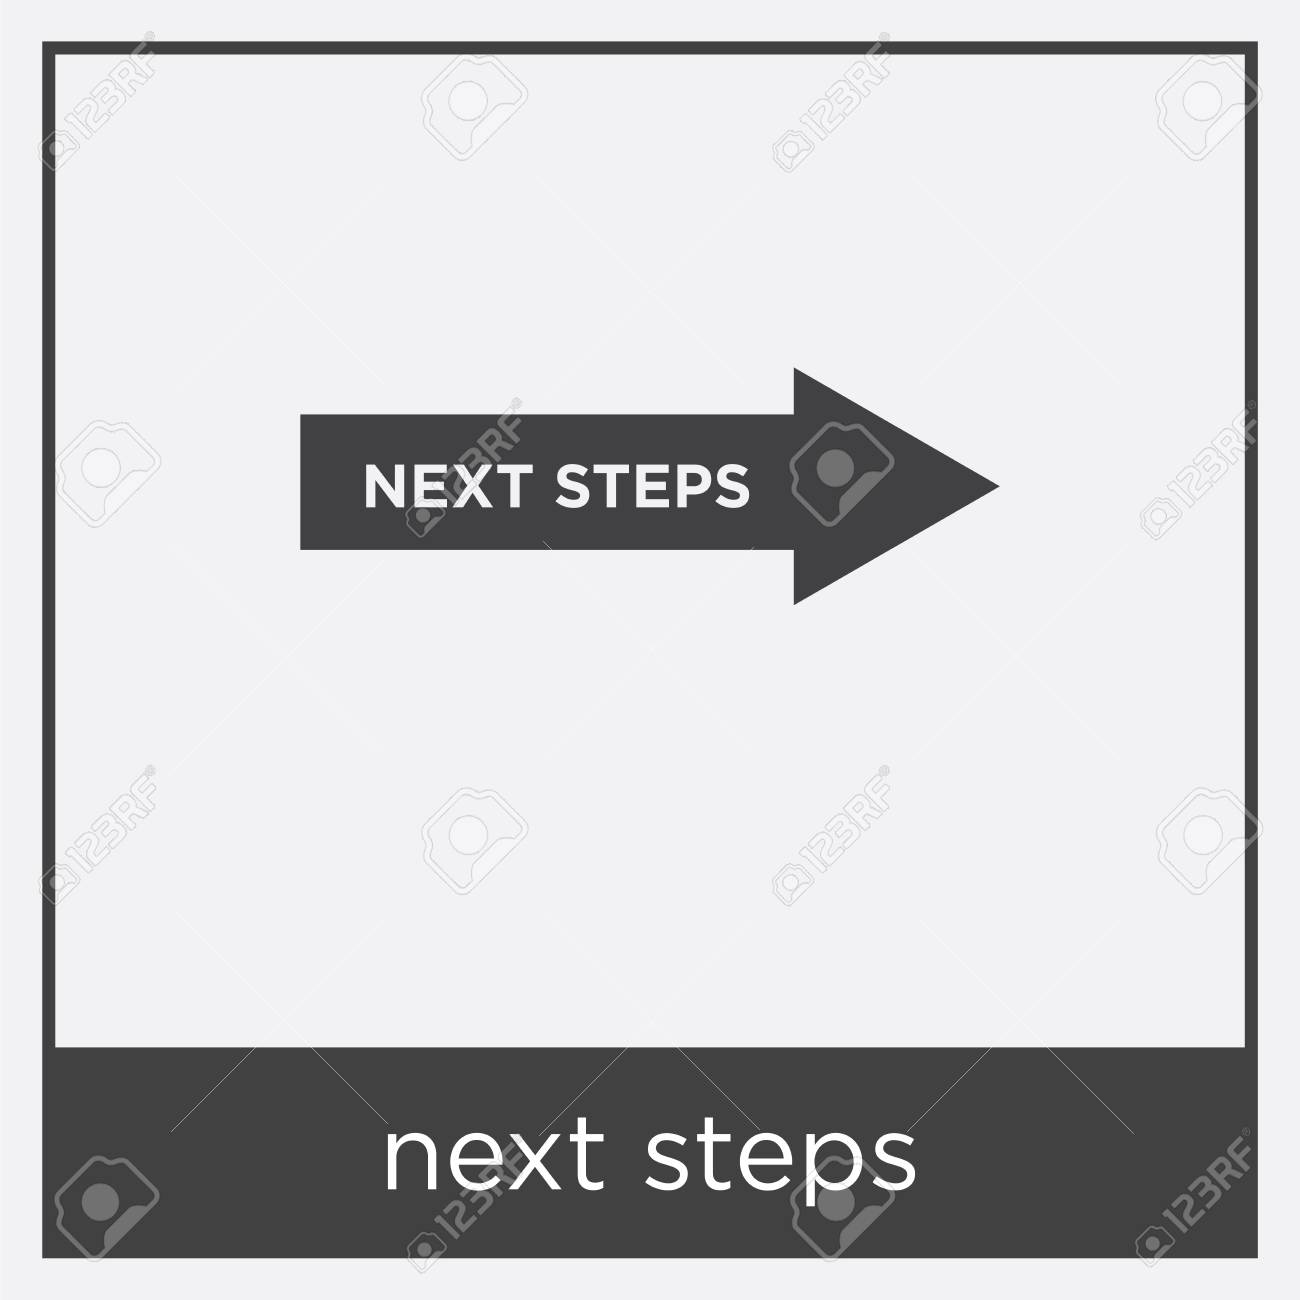 Next steps icon isolated on white background with black border Stock Vector - 100336108